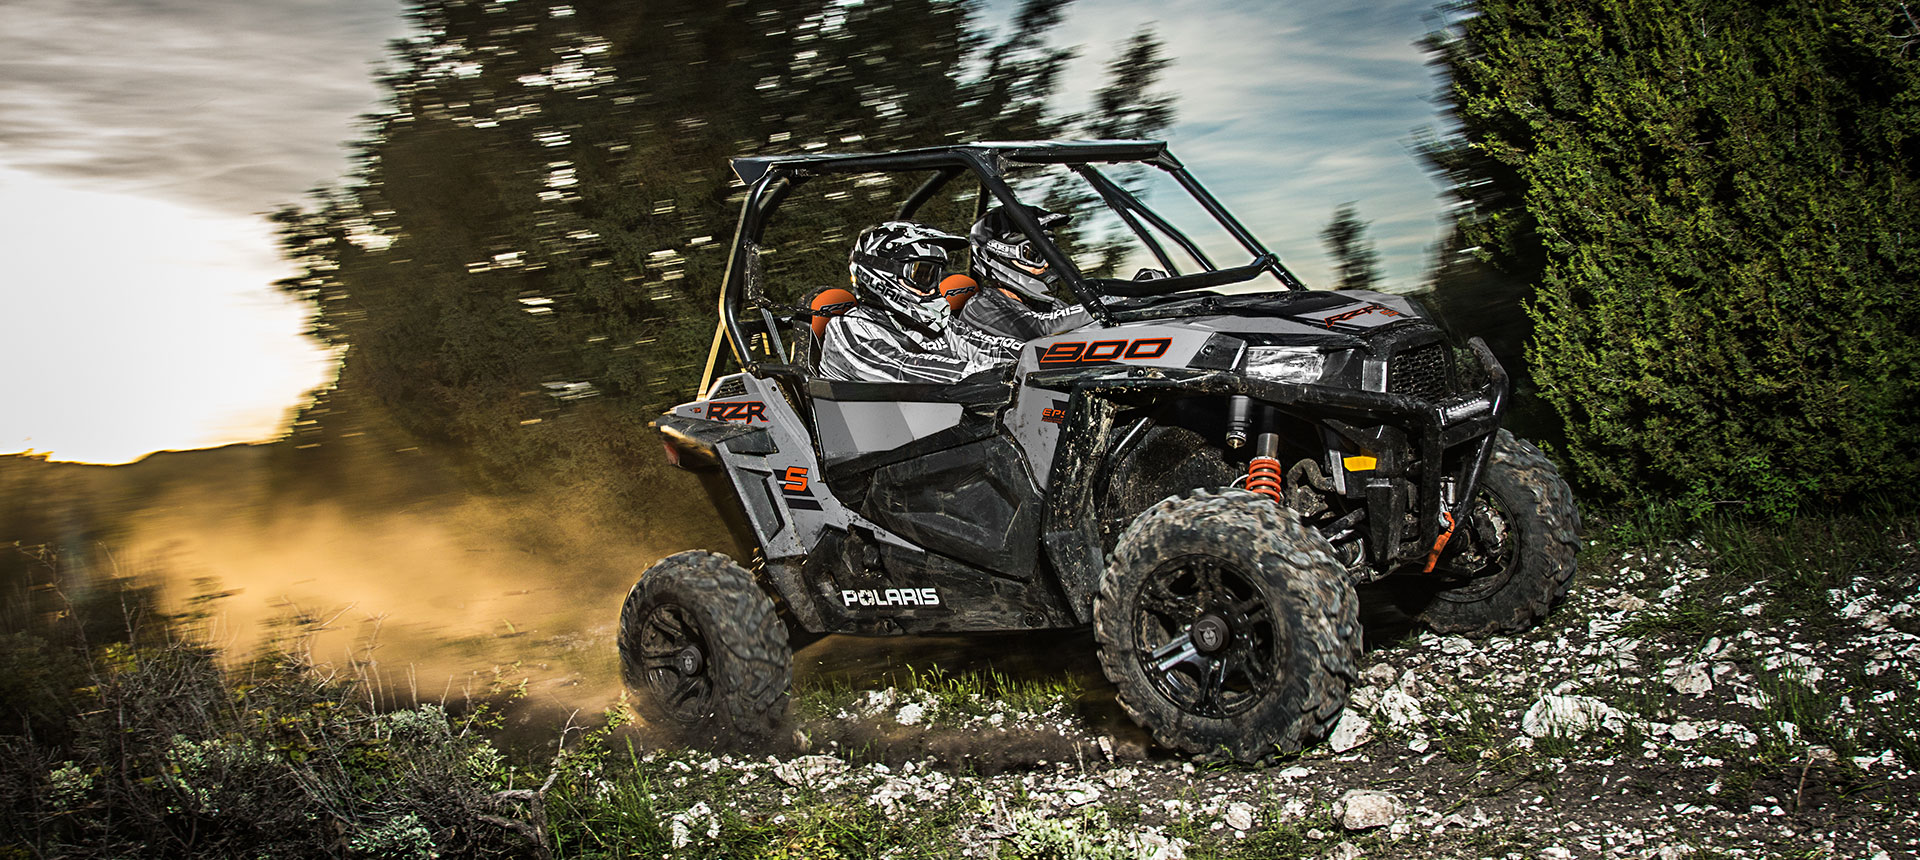 2019 Polaris RZR S 900 EPS in Chanute, Kansas - Photo 6